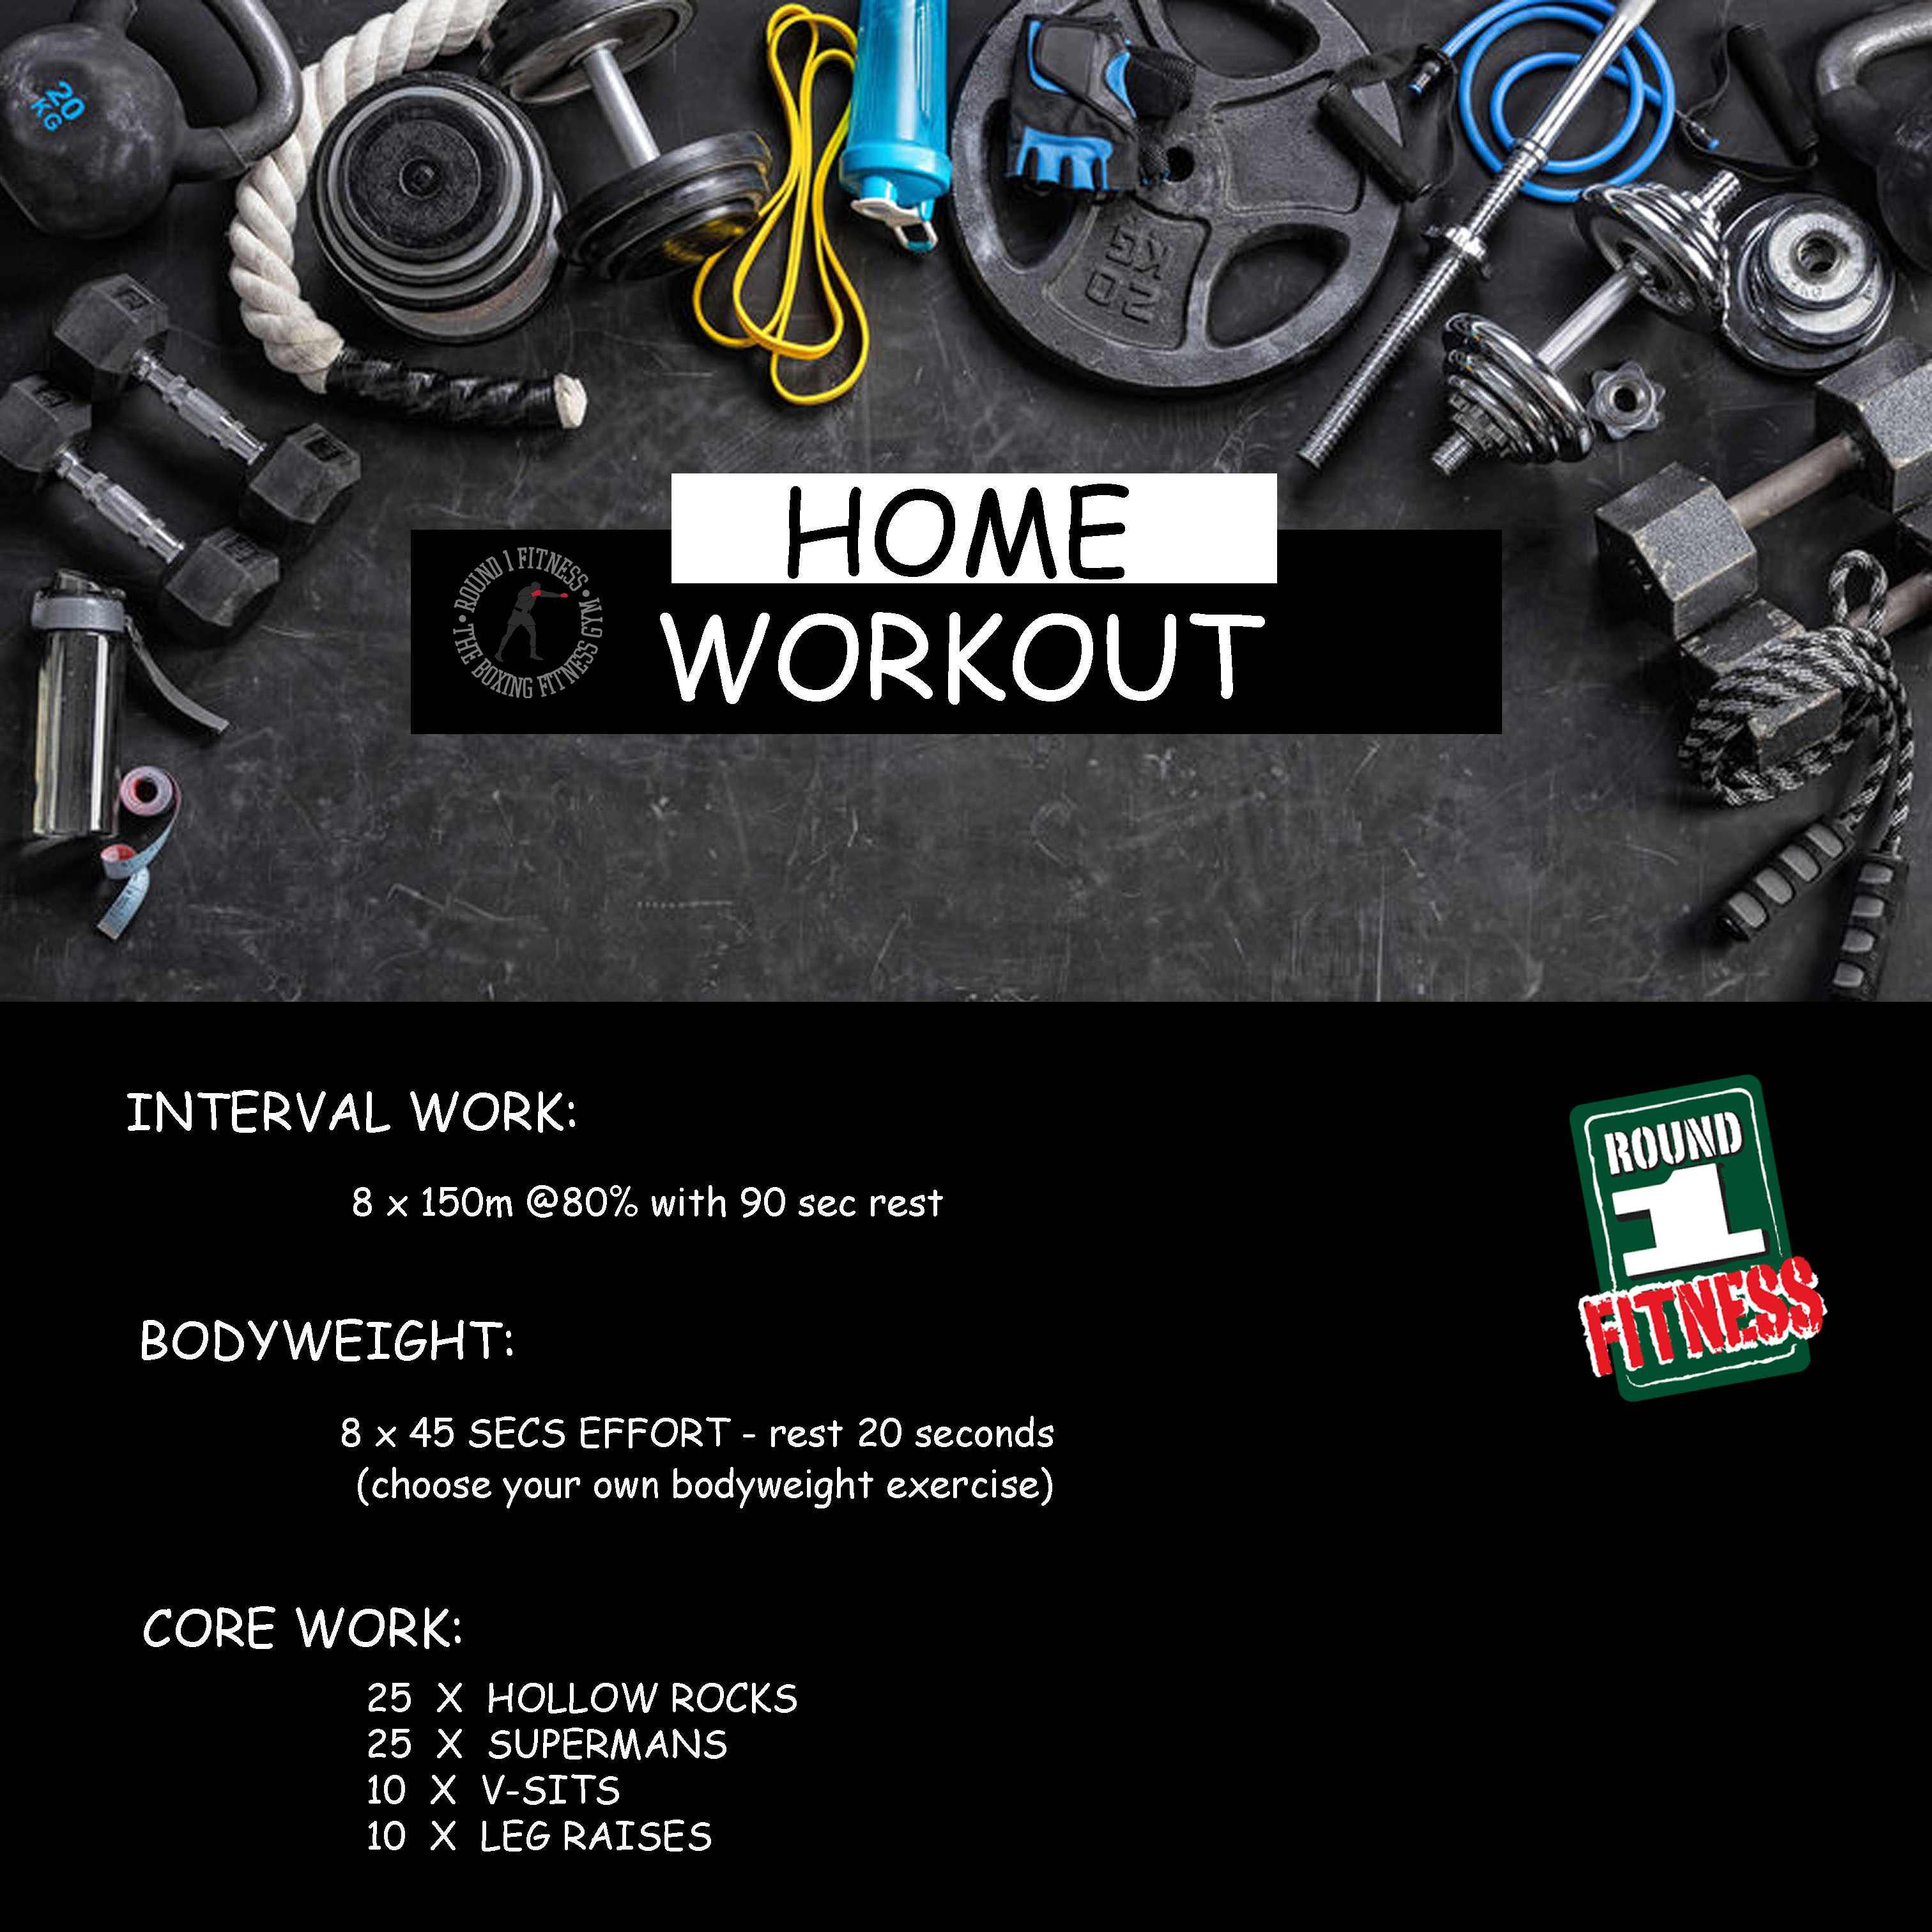 Home Workout:  Saturday May 9th